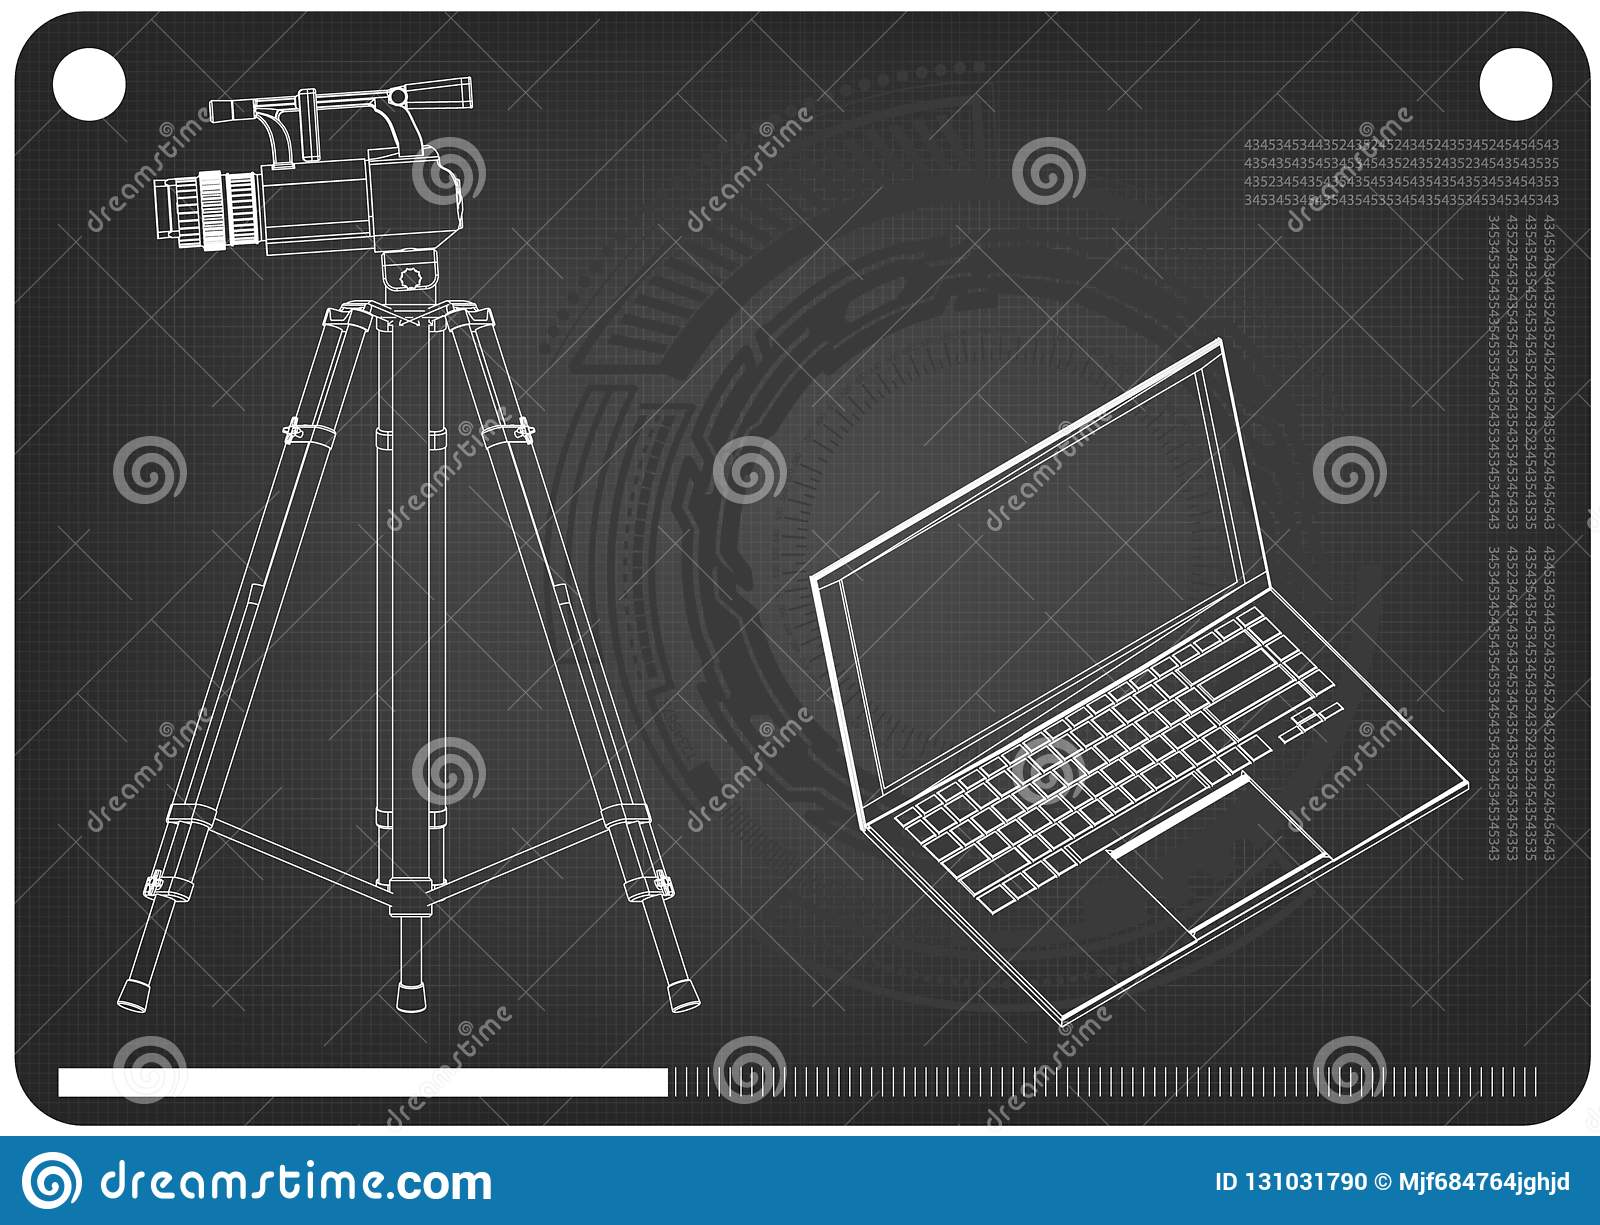 3d model of laptop and camcorder with a tripod